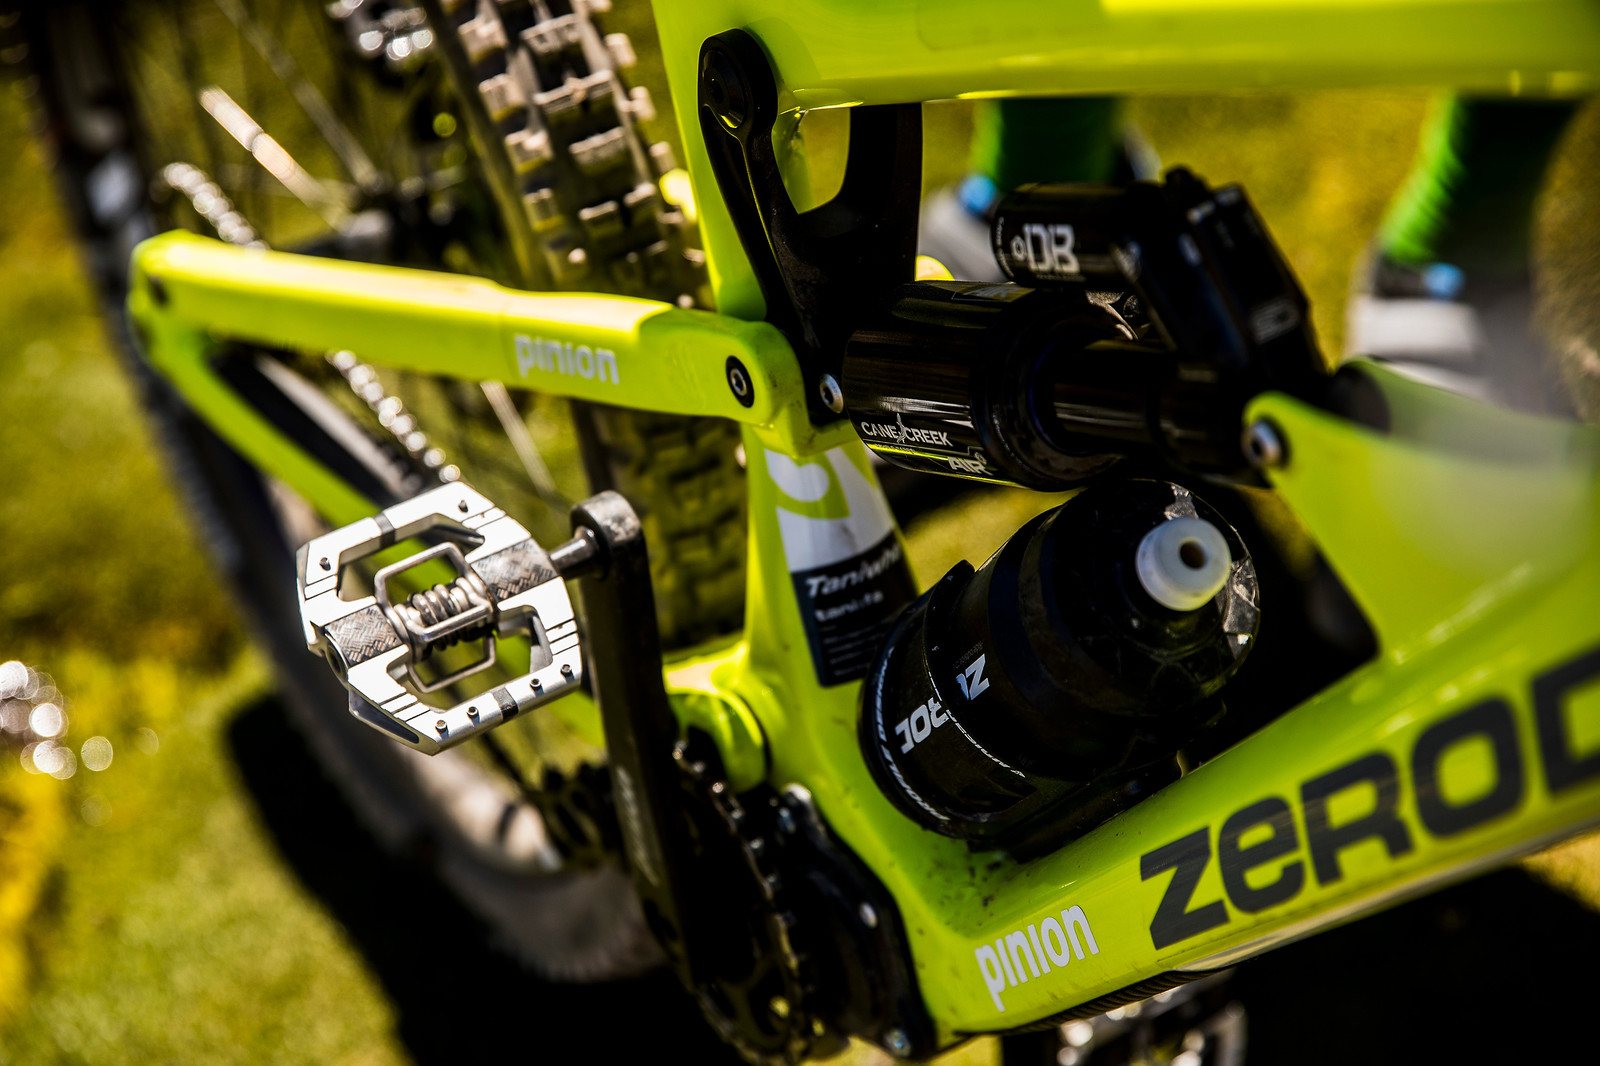 Sam Shaw's Zerode - PIT BITS AND BIKES - Enduro World Series, Chile - Mountain Biking Pictures - Vital MTB